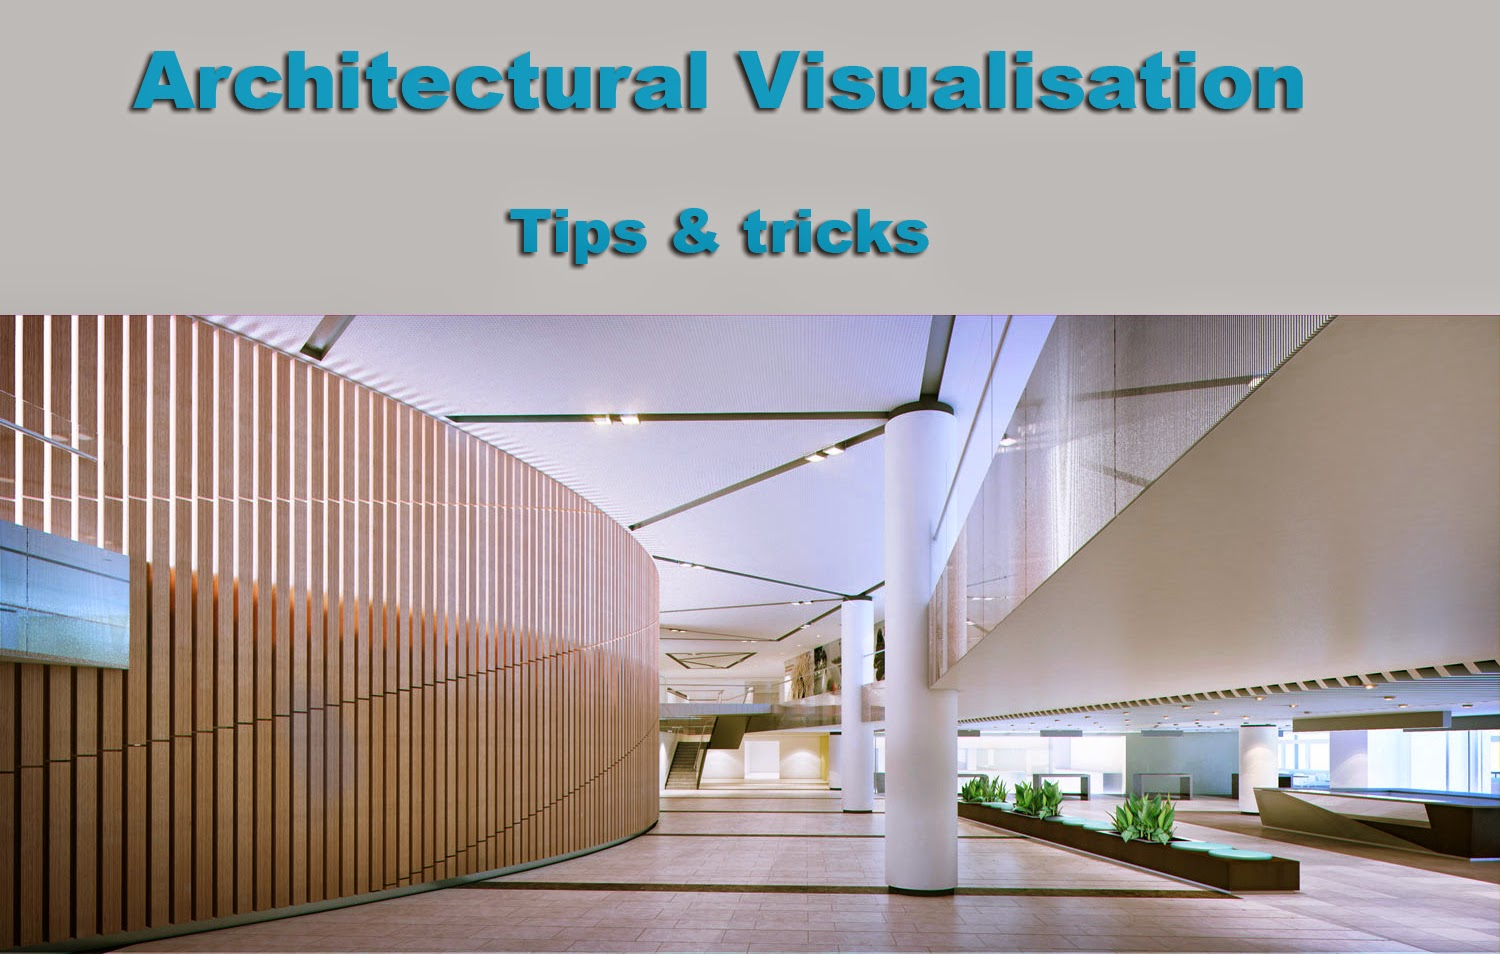 3ds max   3d Data visualisation  3d images   vray   mental ray   Photorealistic Rendering ...